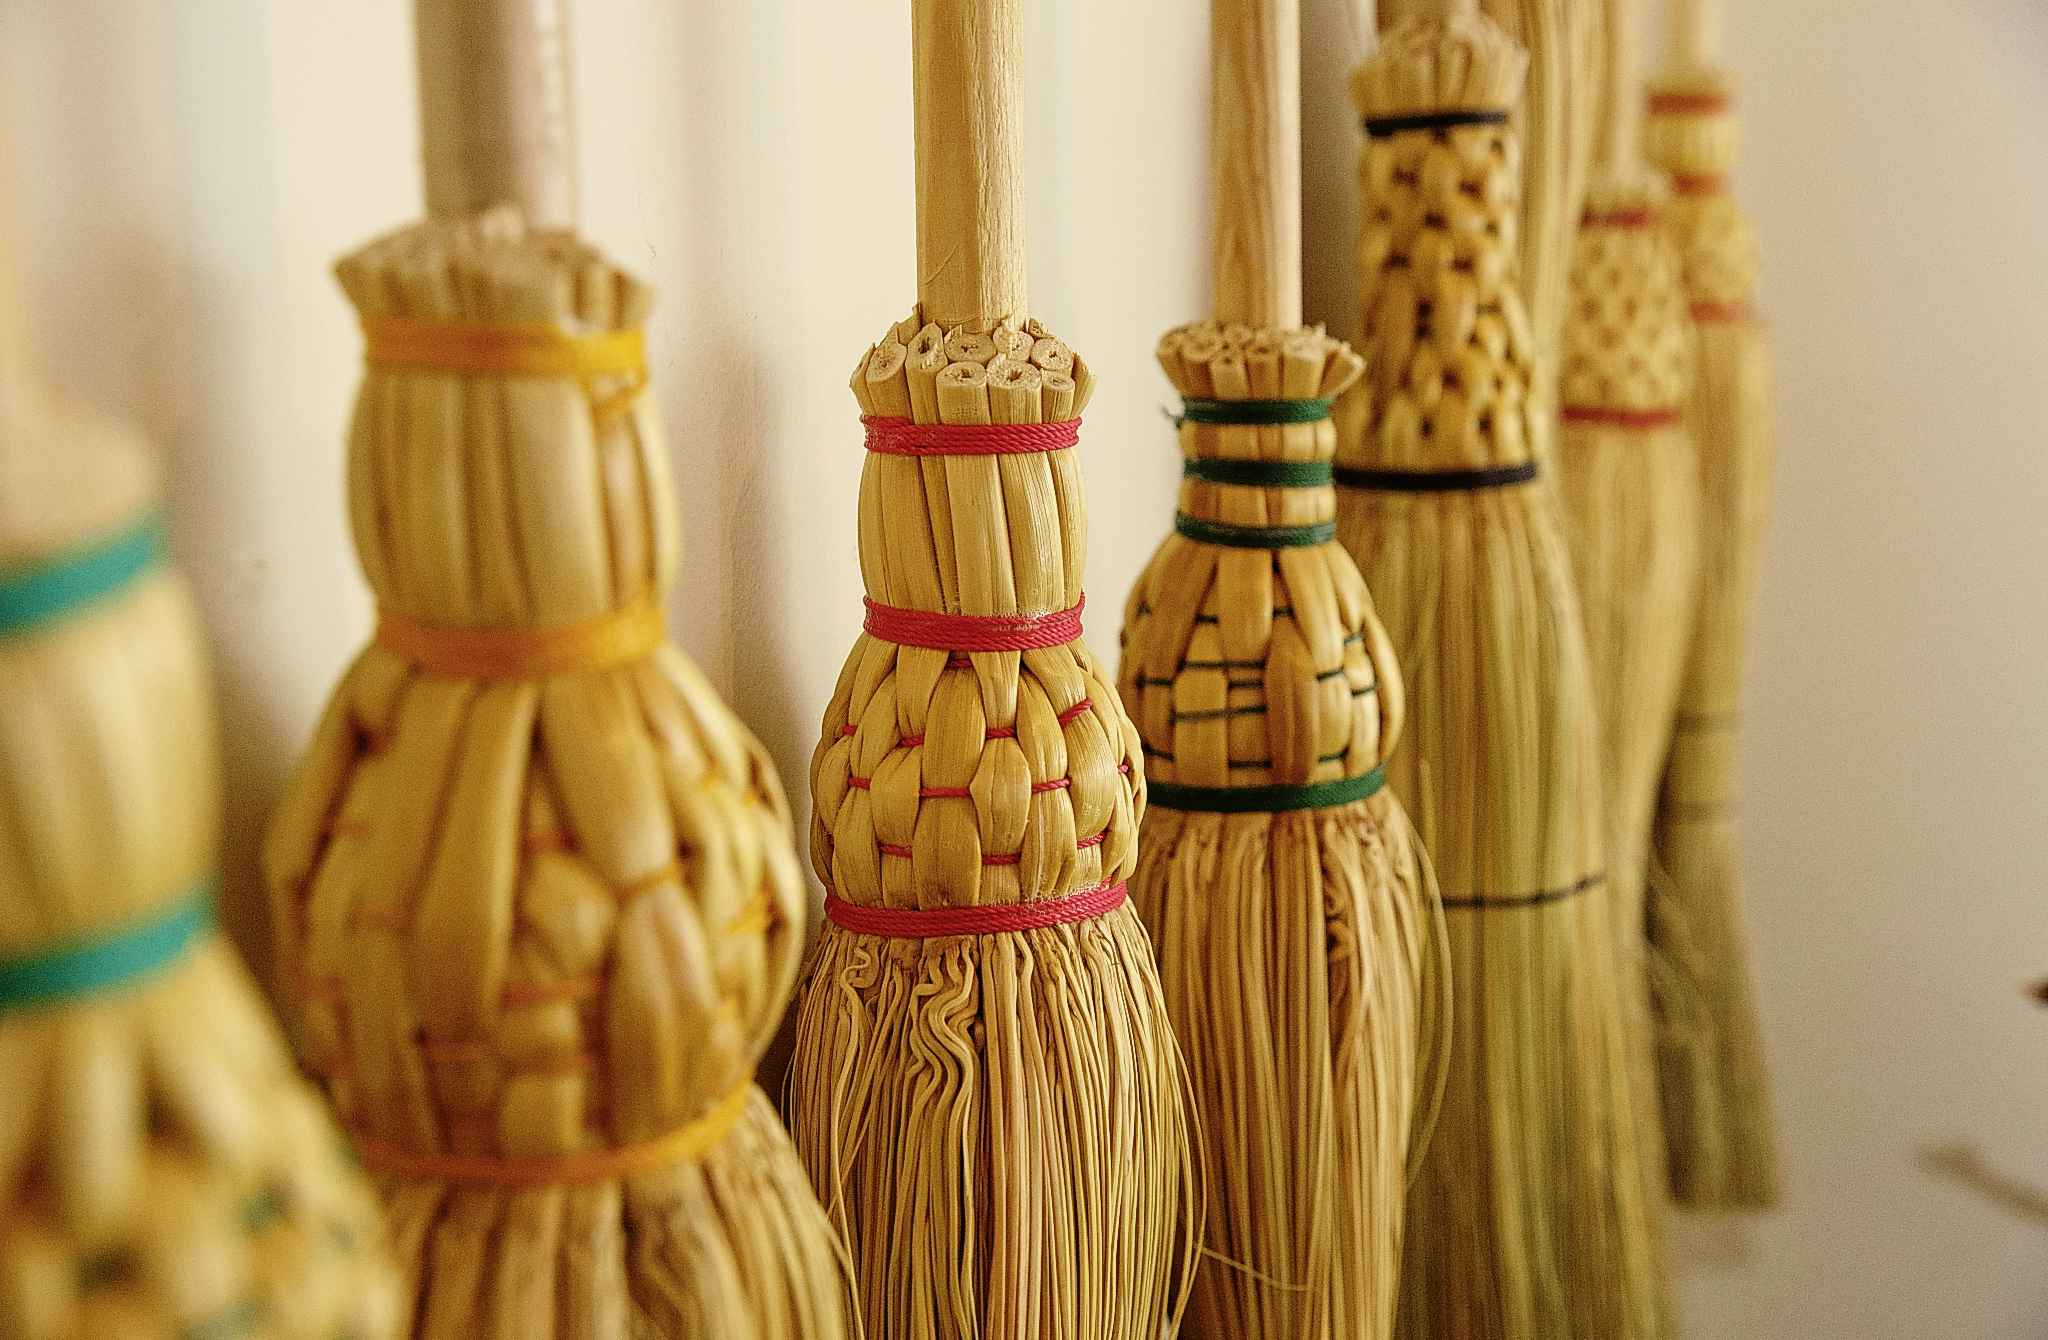 Haswell makes 32 varieties of brooms in her Wolseley-area home.</p>